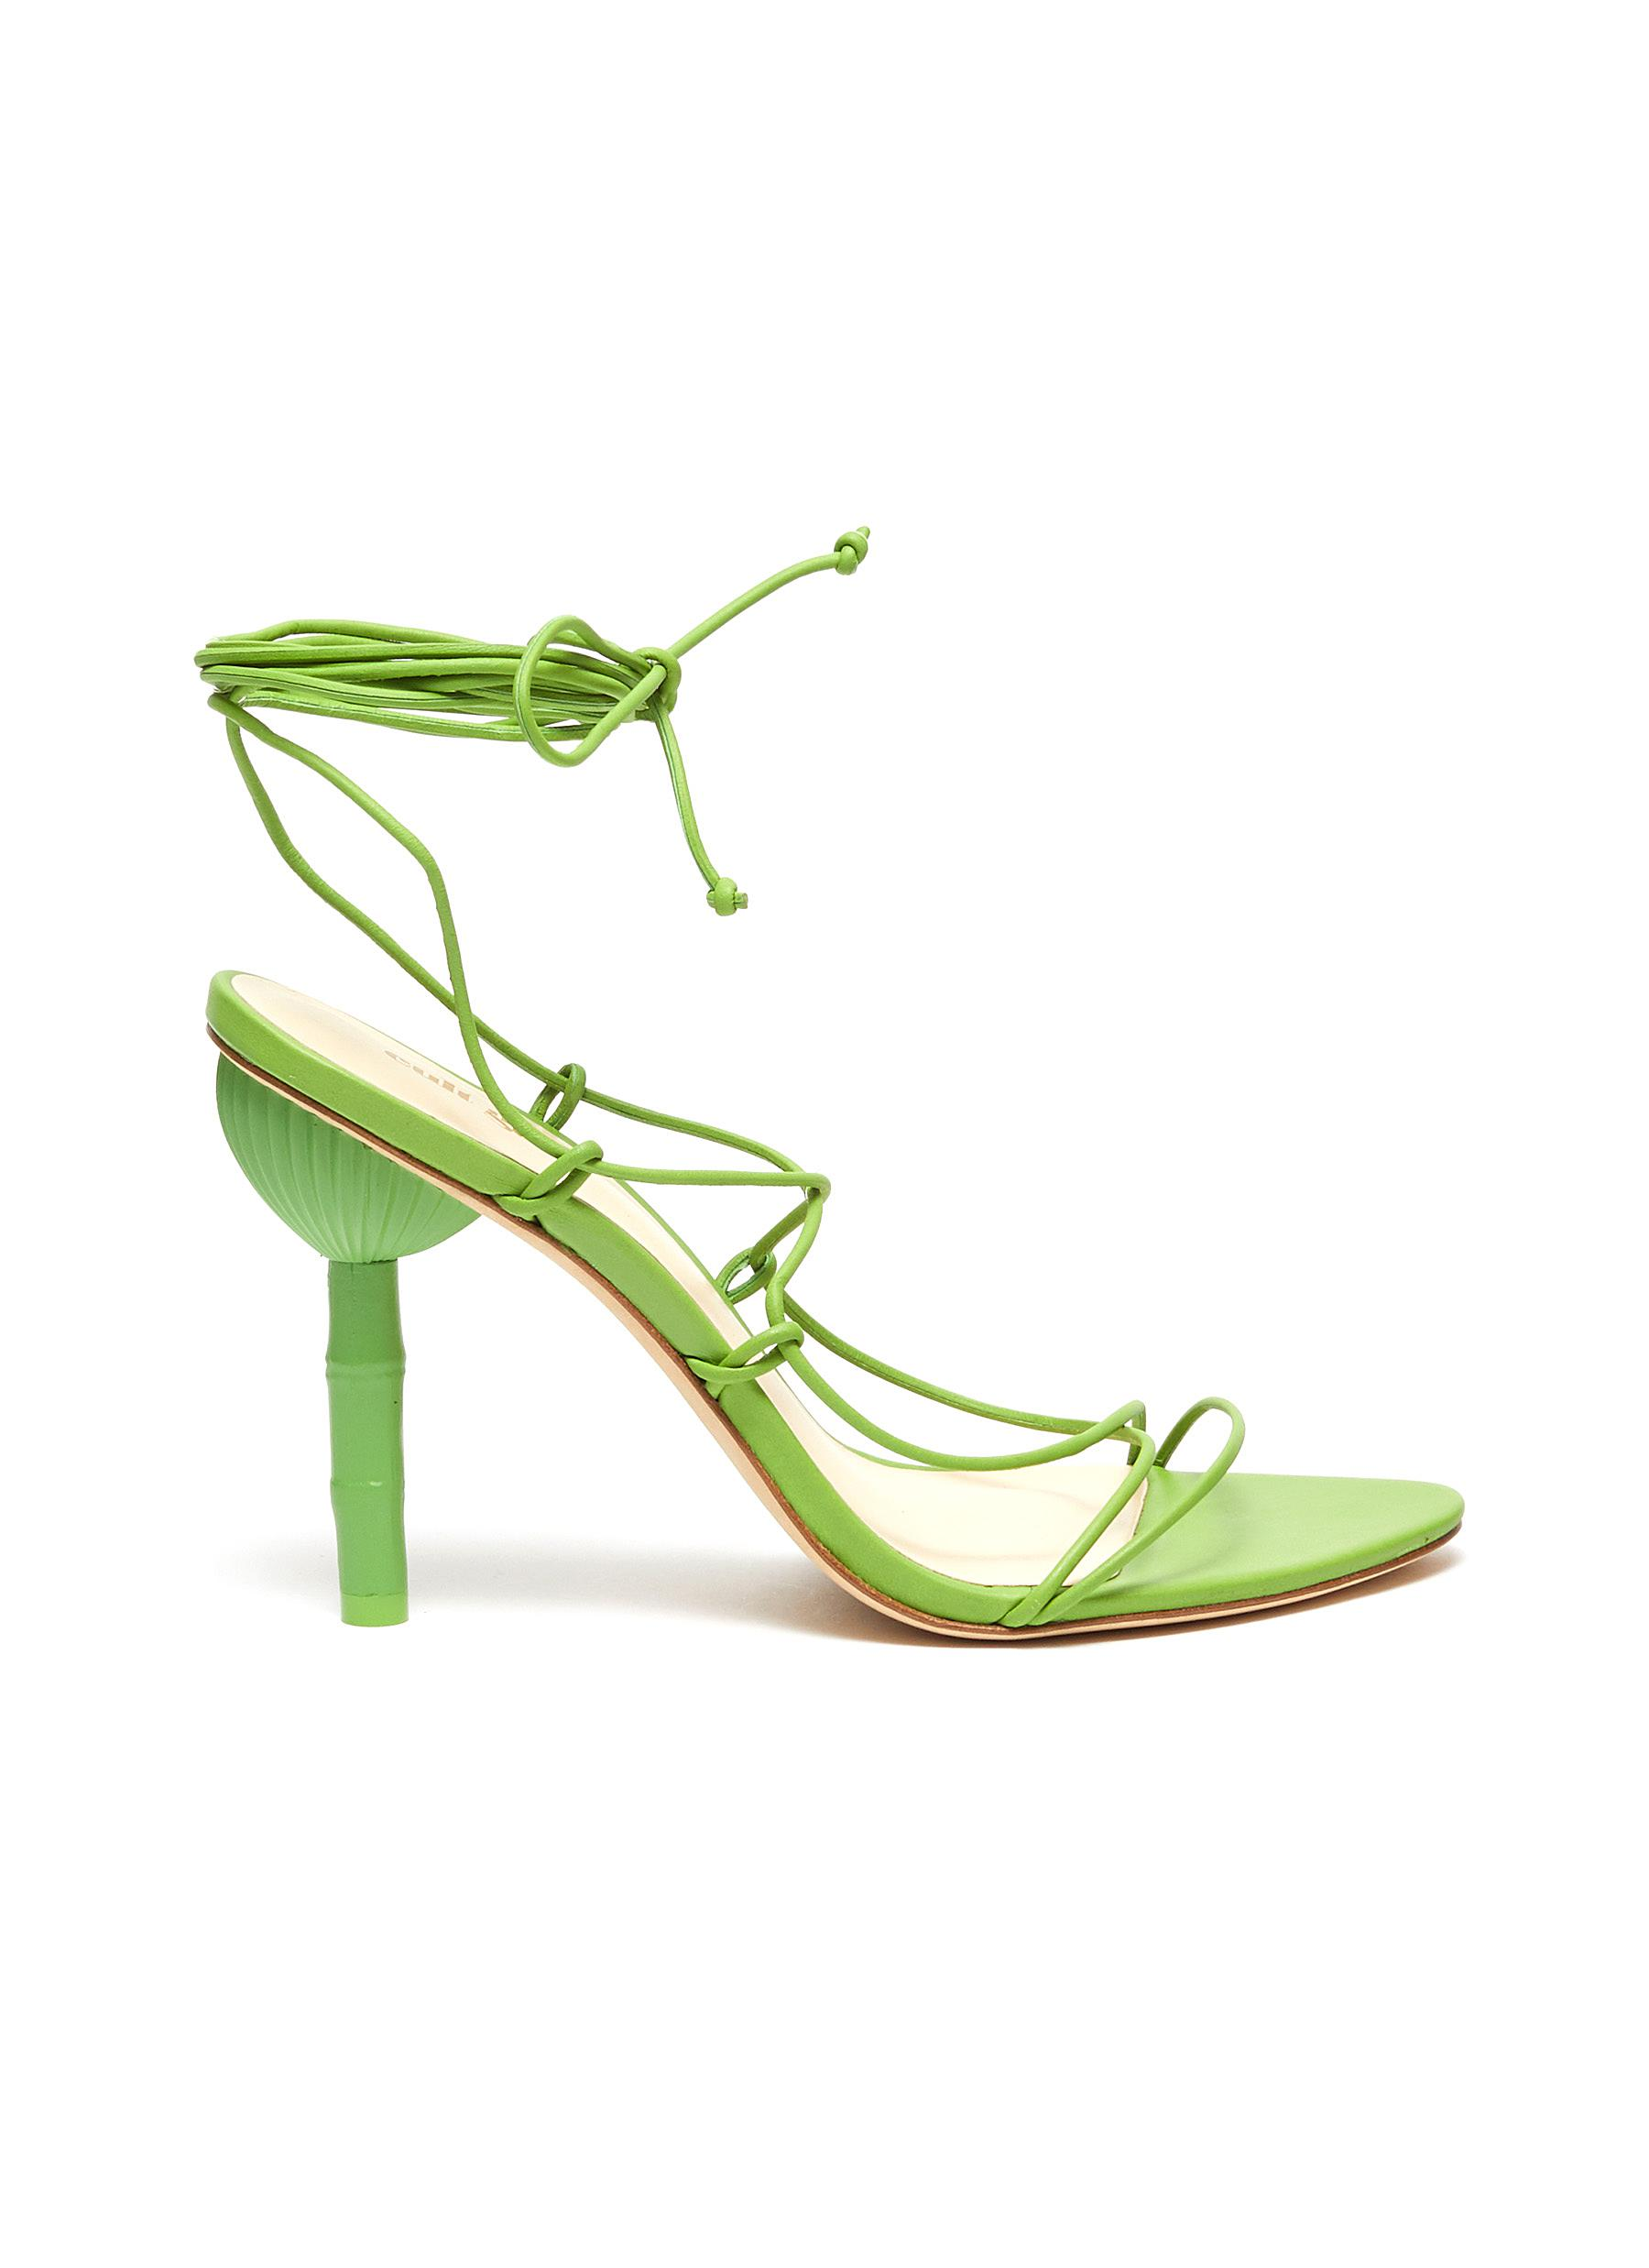 Soleil bamboo effect heel lace-up sandals by Cult Gaia